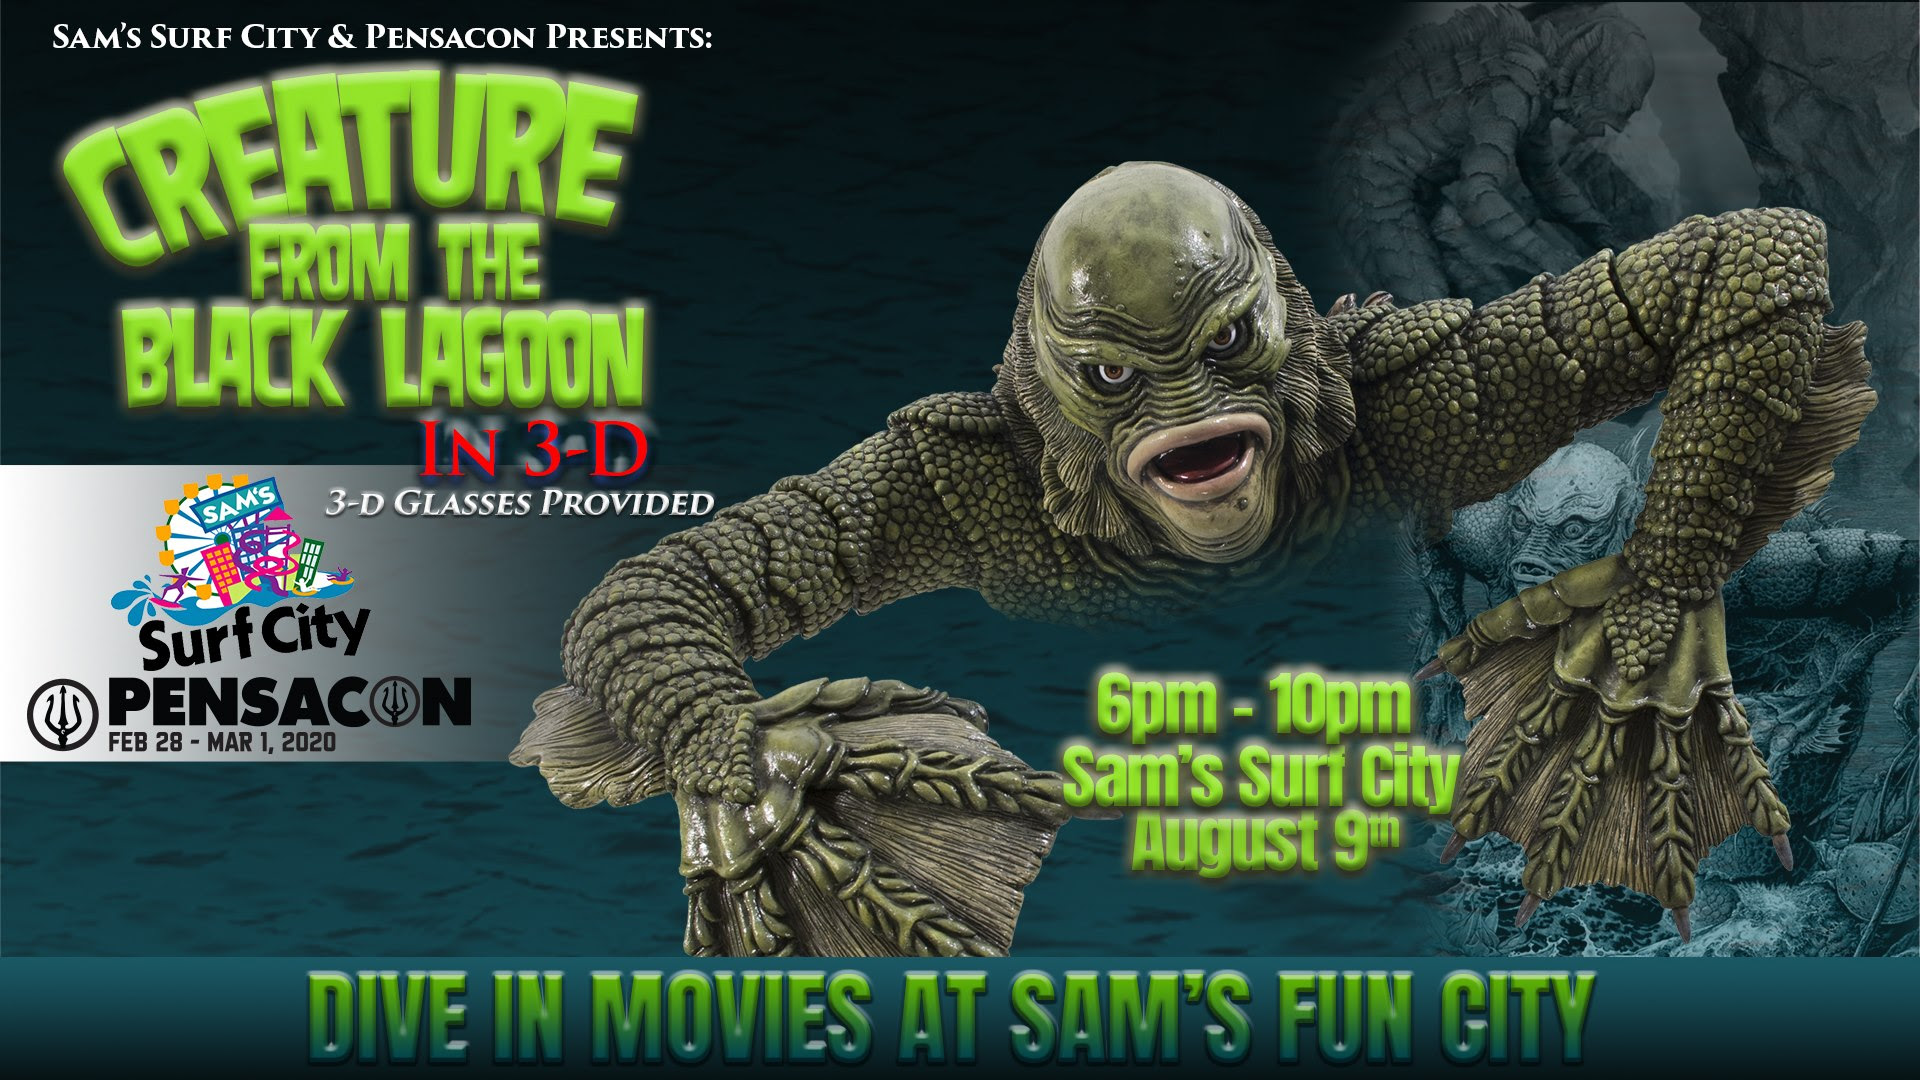 Dive In Movie Creature From The Black Lagoon